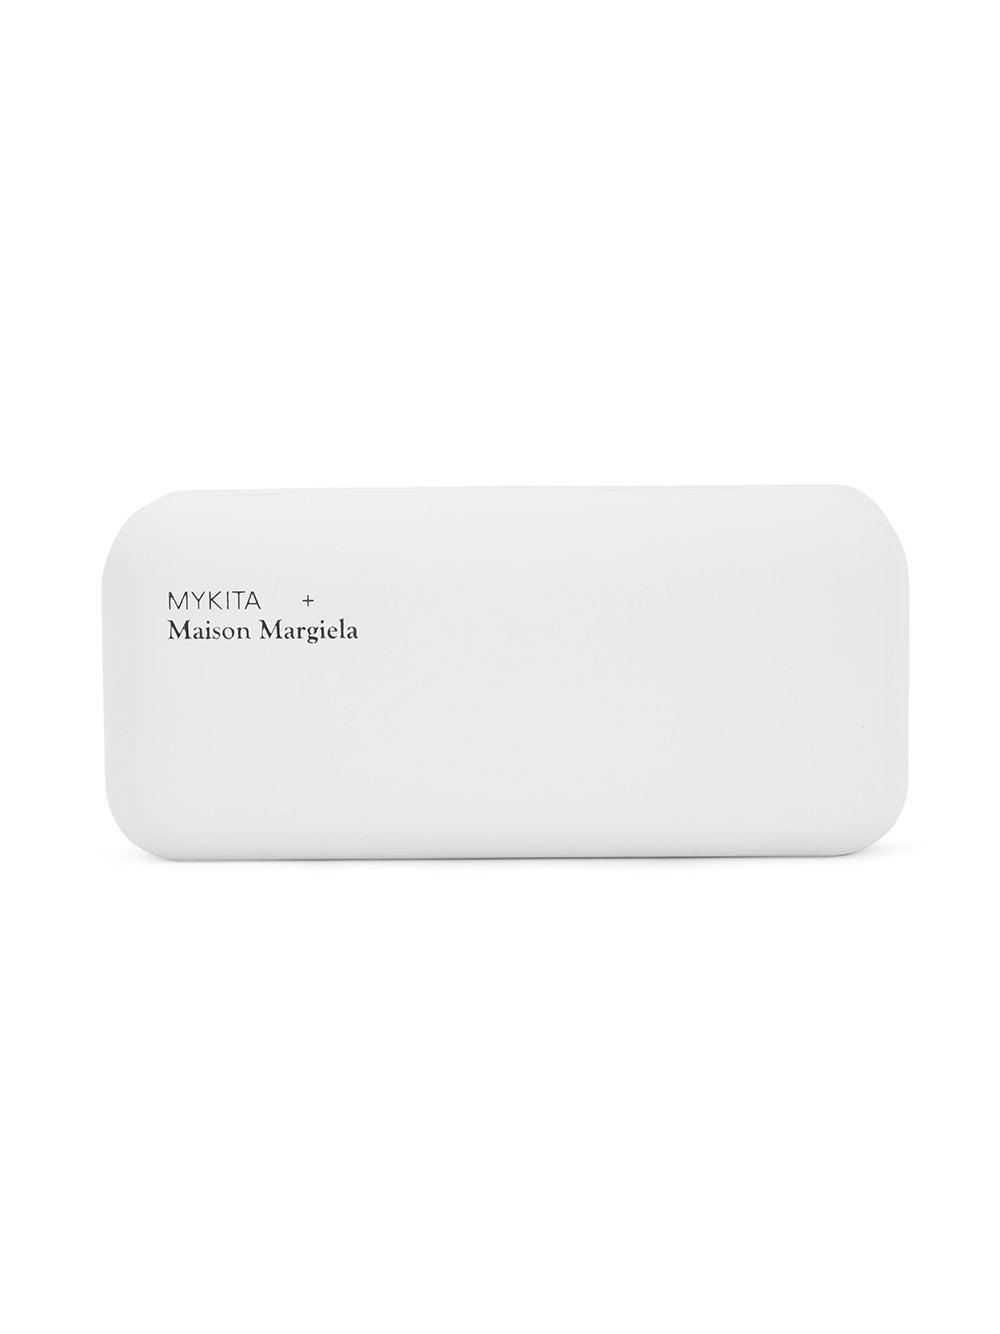 Mykita x Margiela Yellow Frame Glasses Case - 4